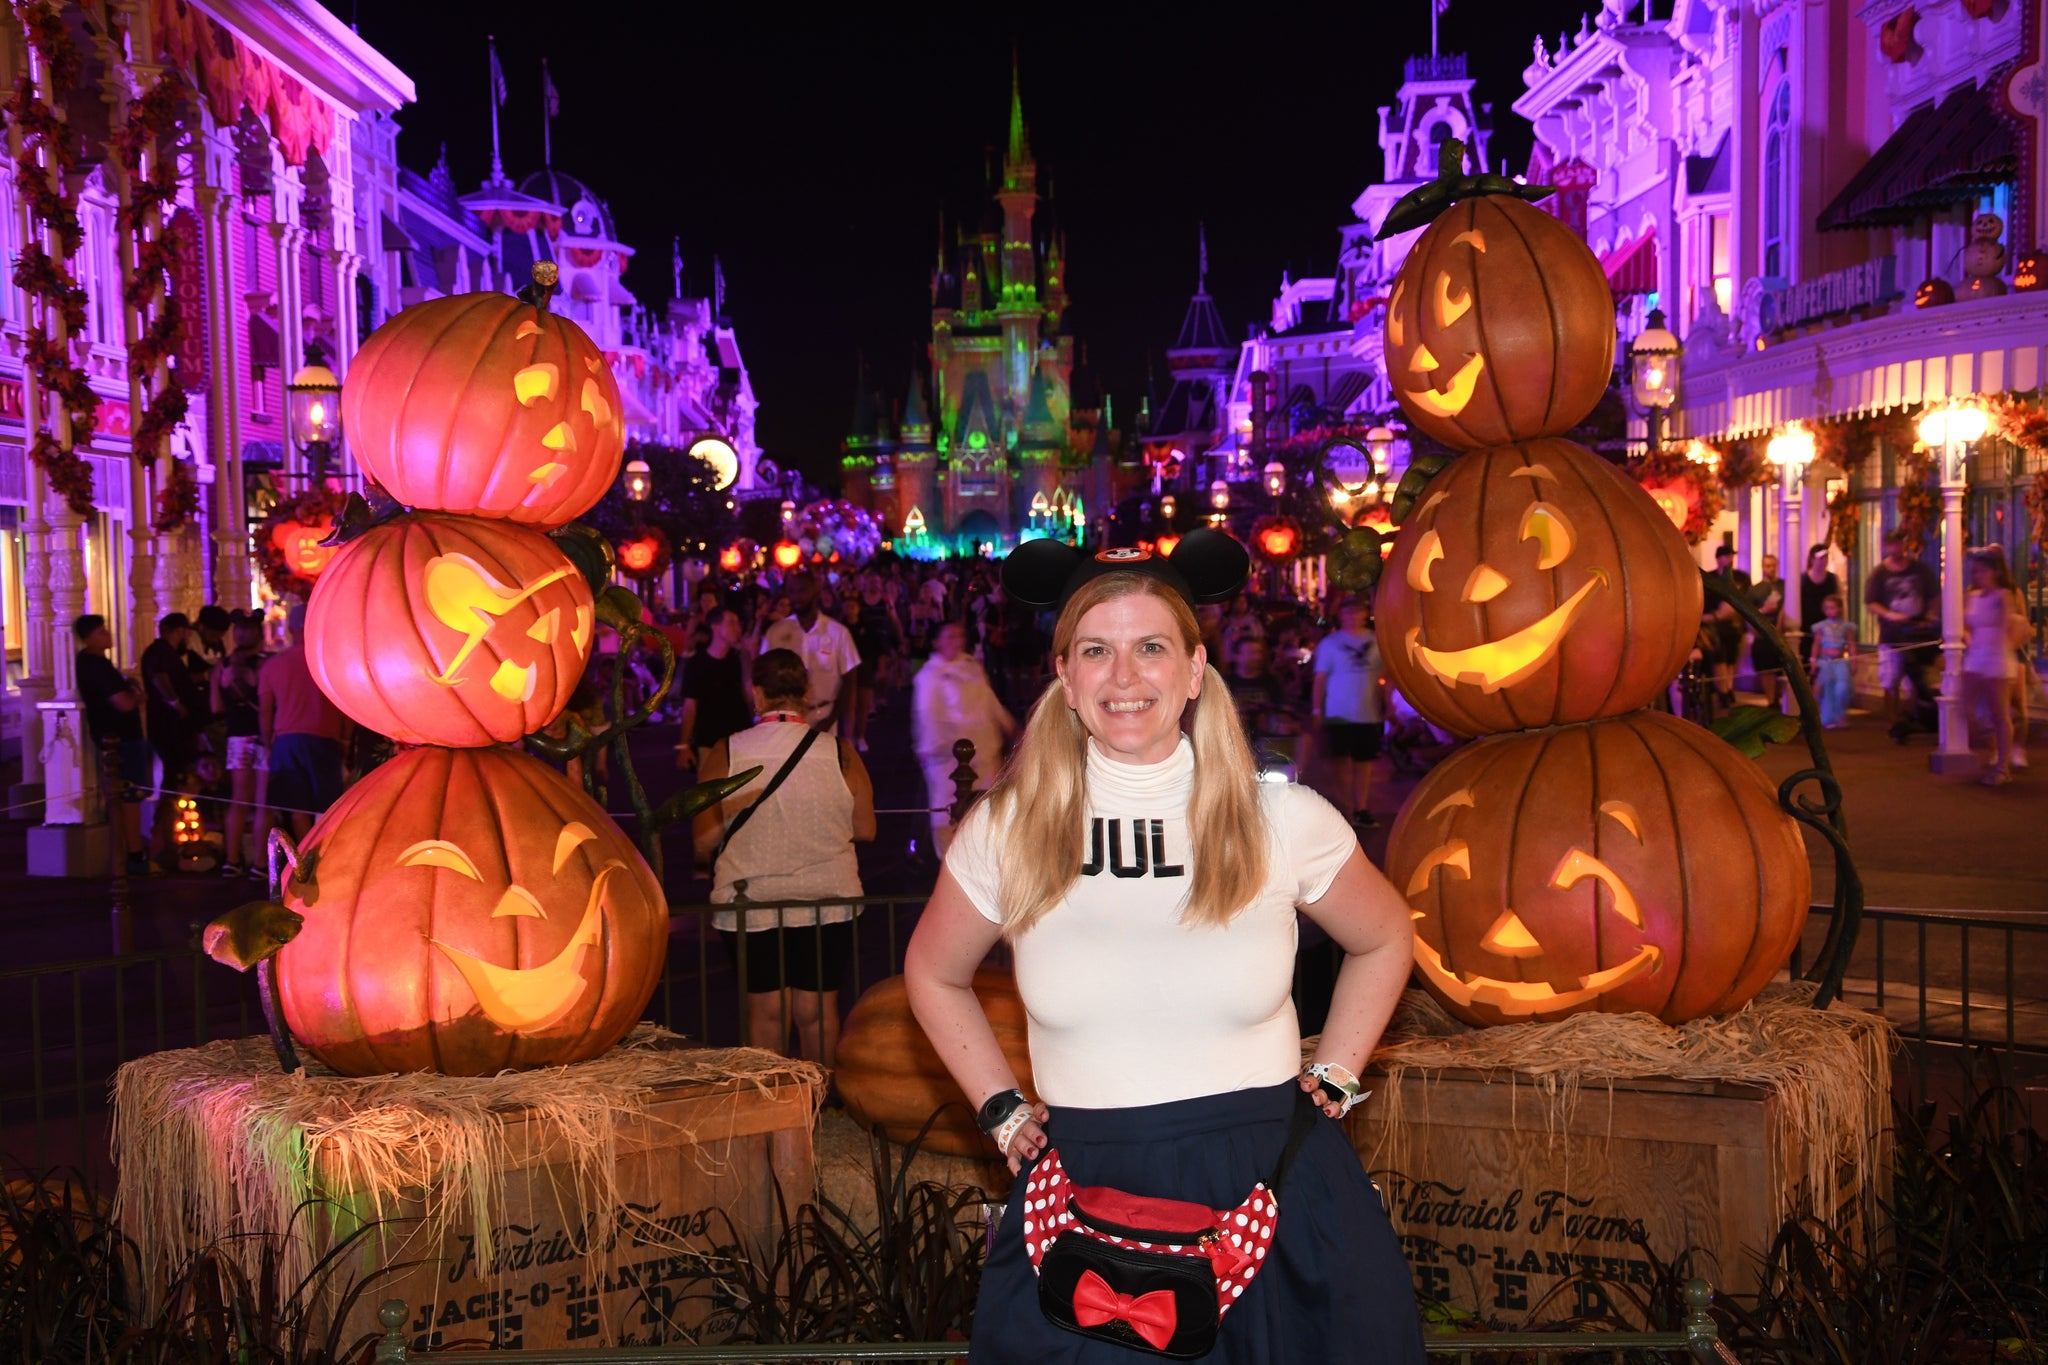 Mickey's Not so scary Halloween Party Photopass